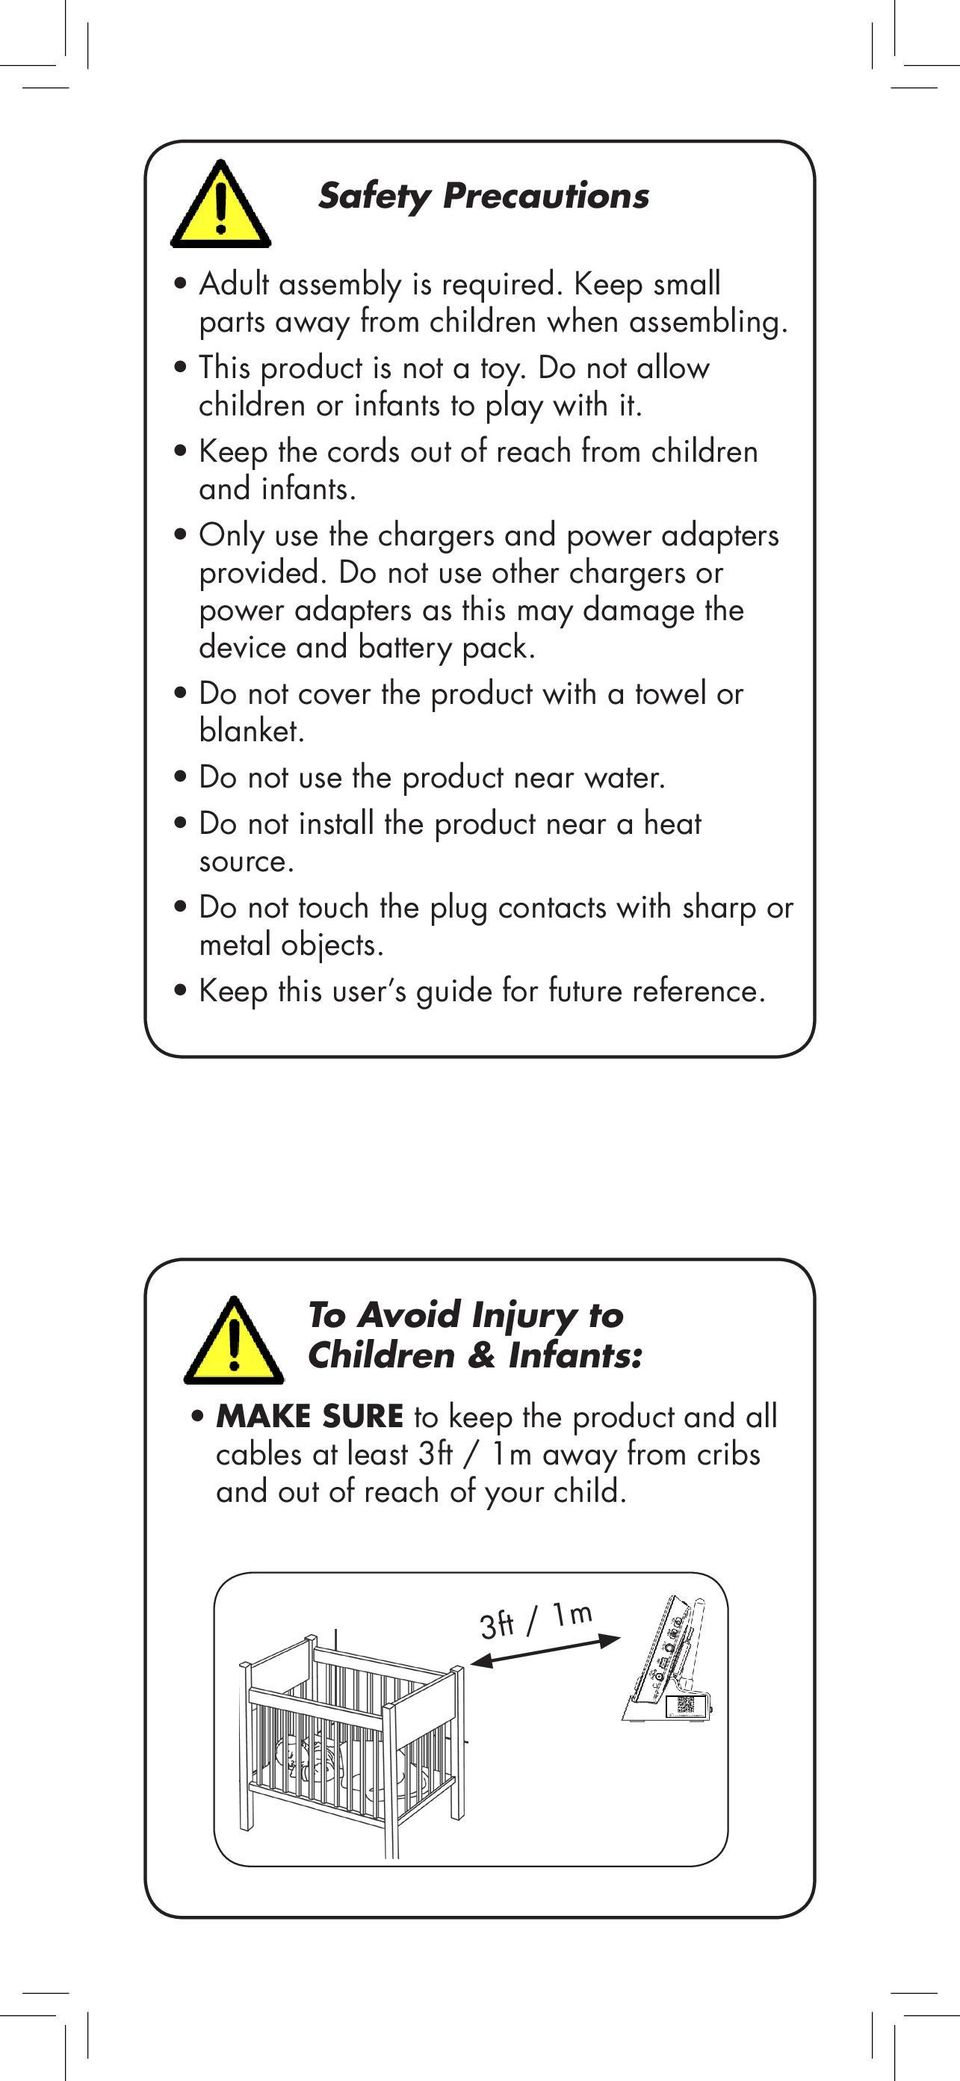 Do not use other chargers or power adapters as this may damage the device and battery pack. Do not cover the product with a towel or blanket. Do not use the product near water.